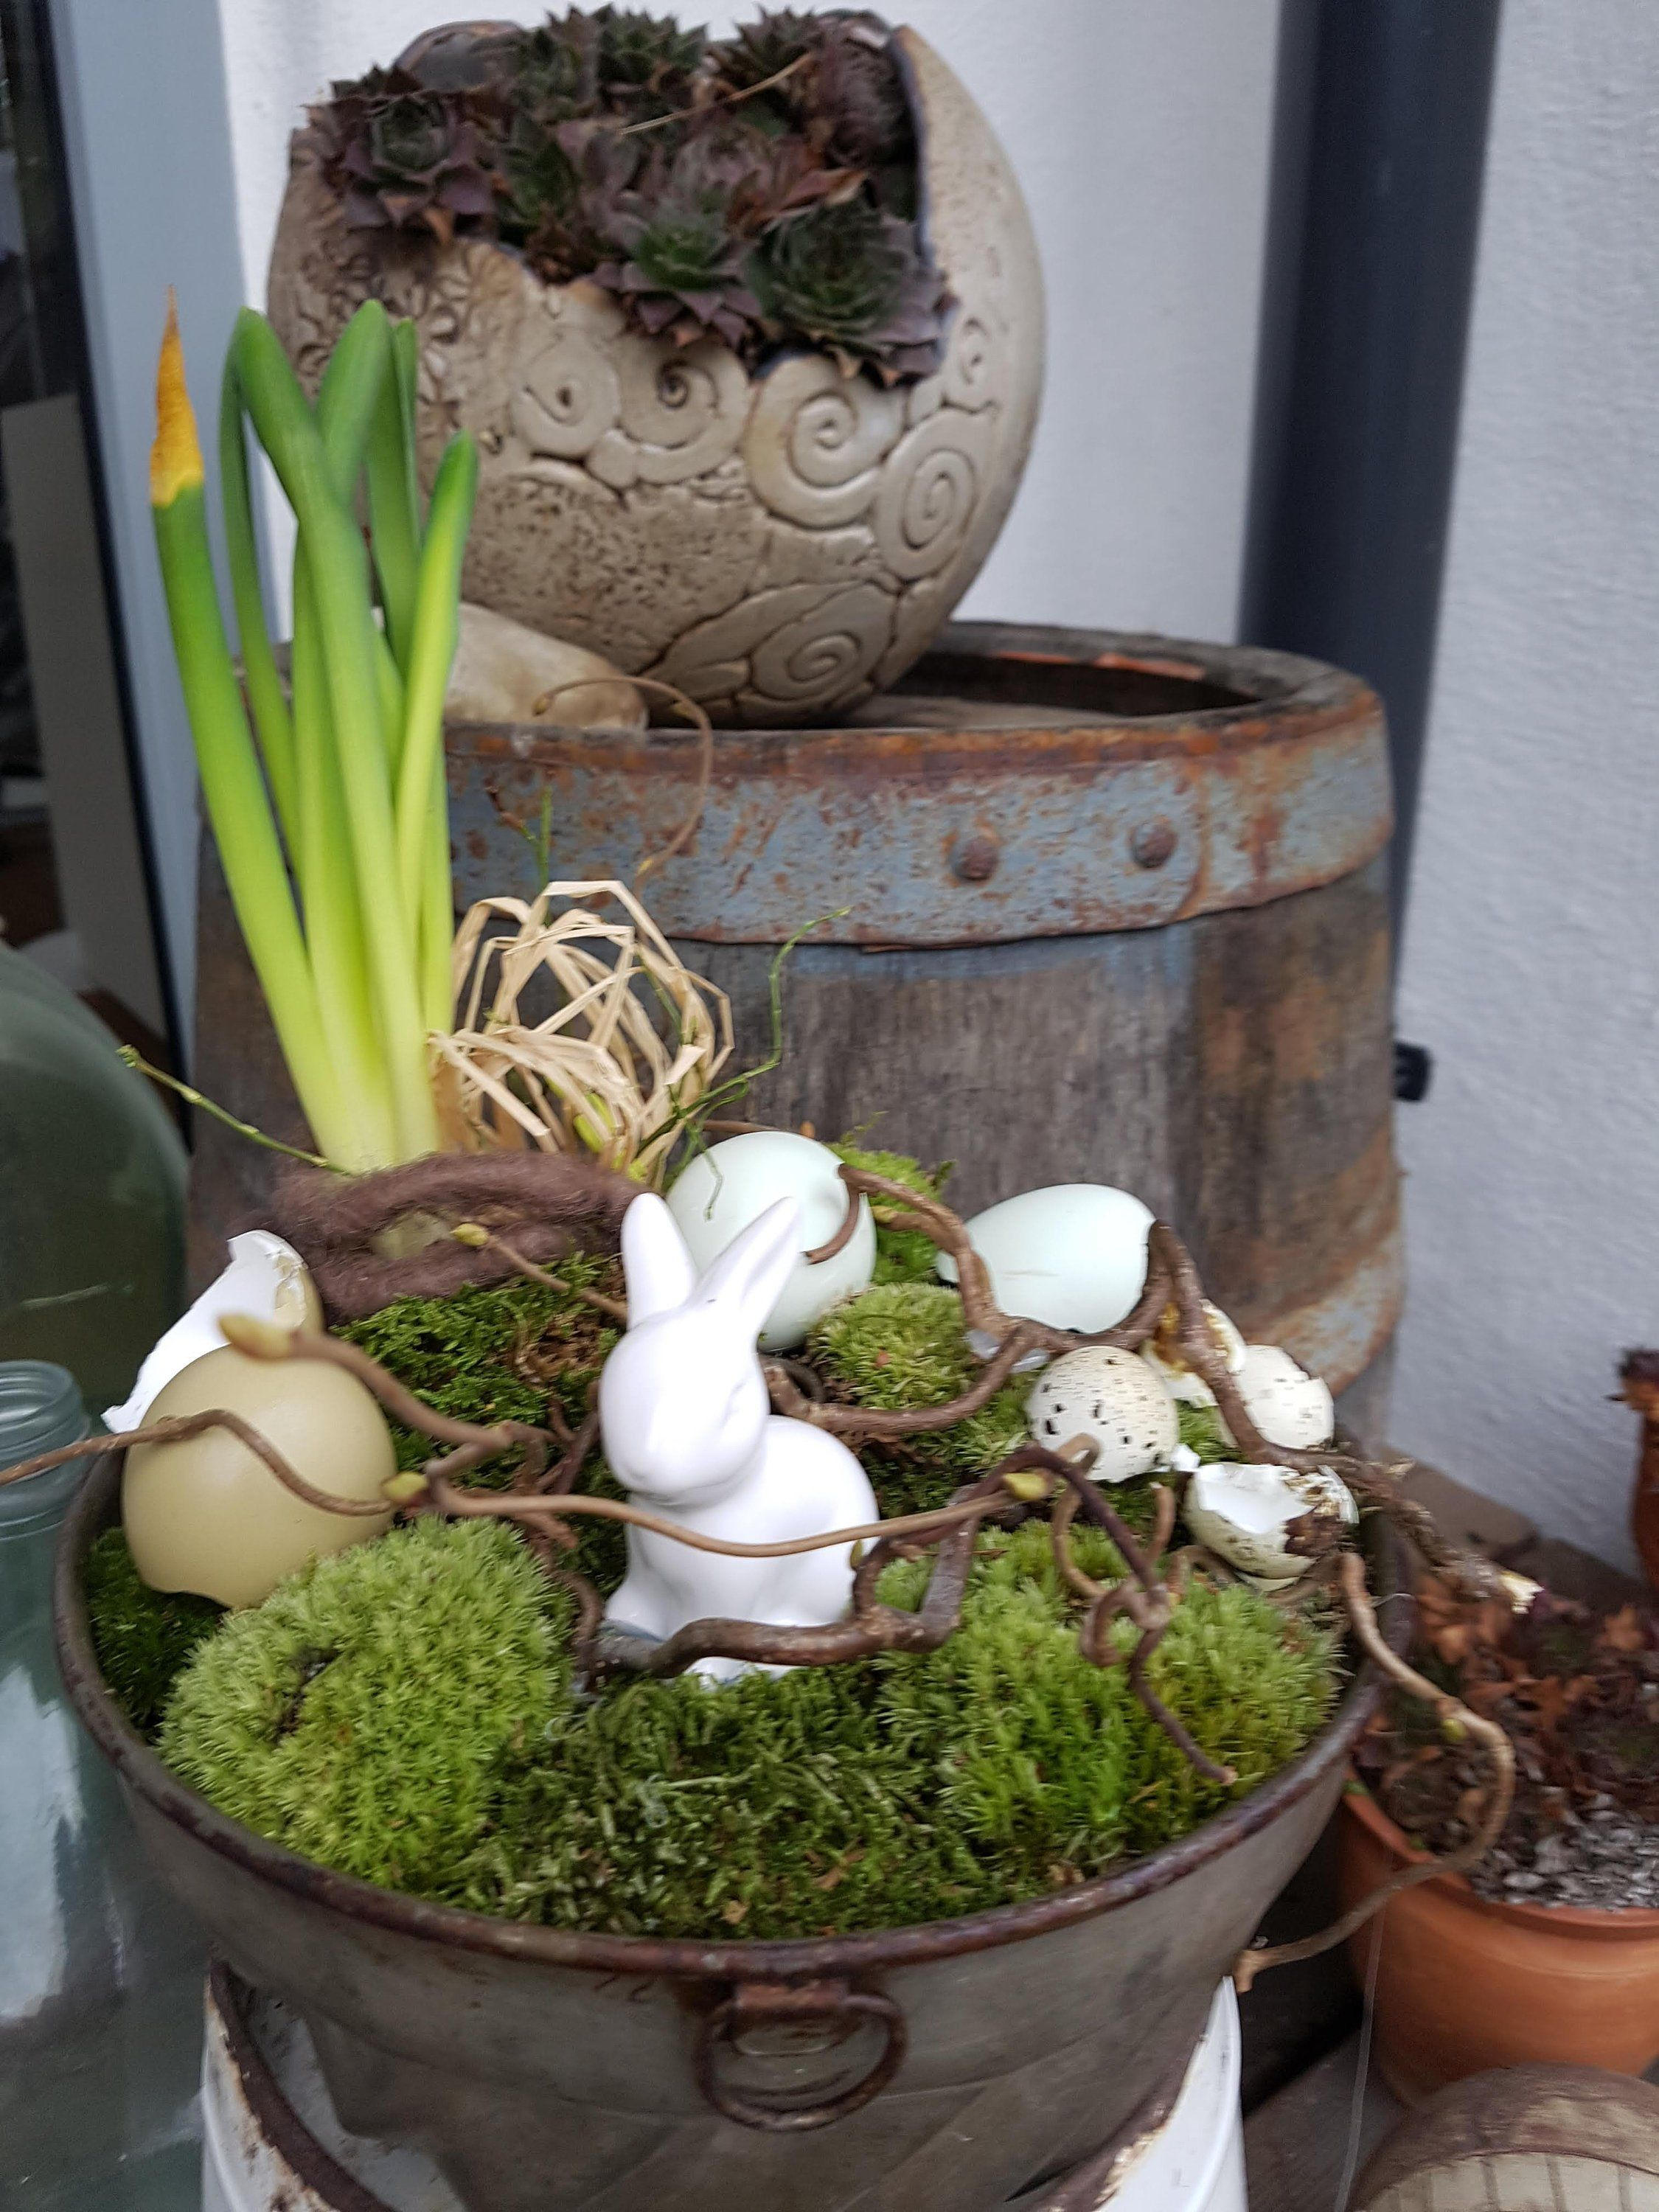 Decoration, Easter, spring, bunny, baking dish, shabby decoration, table decoration, natural decoration, gugelhupffform, moss, eggshells, quail egg